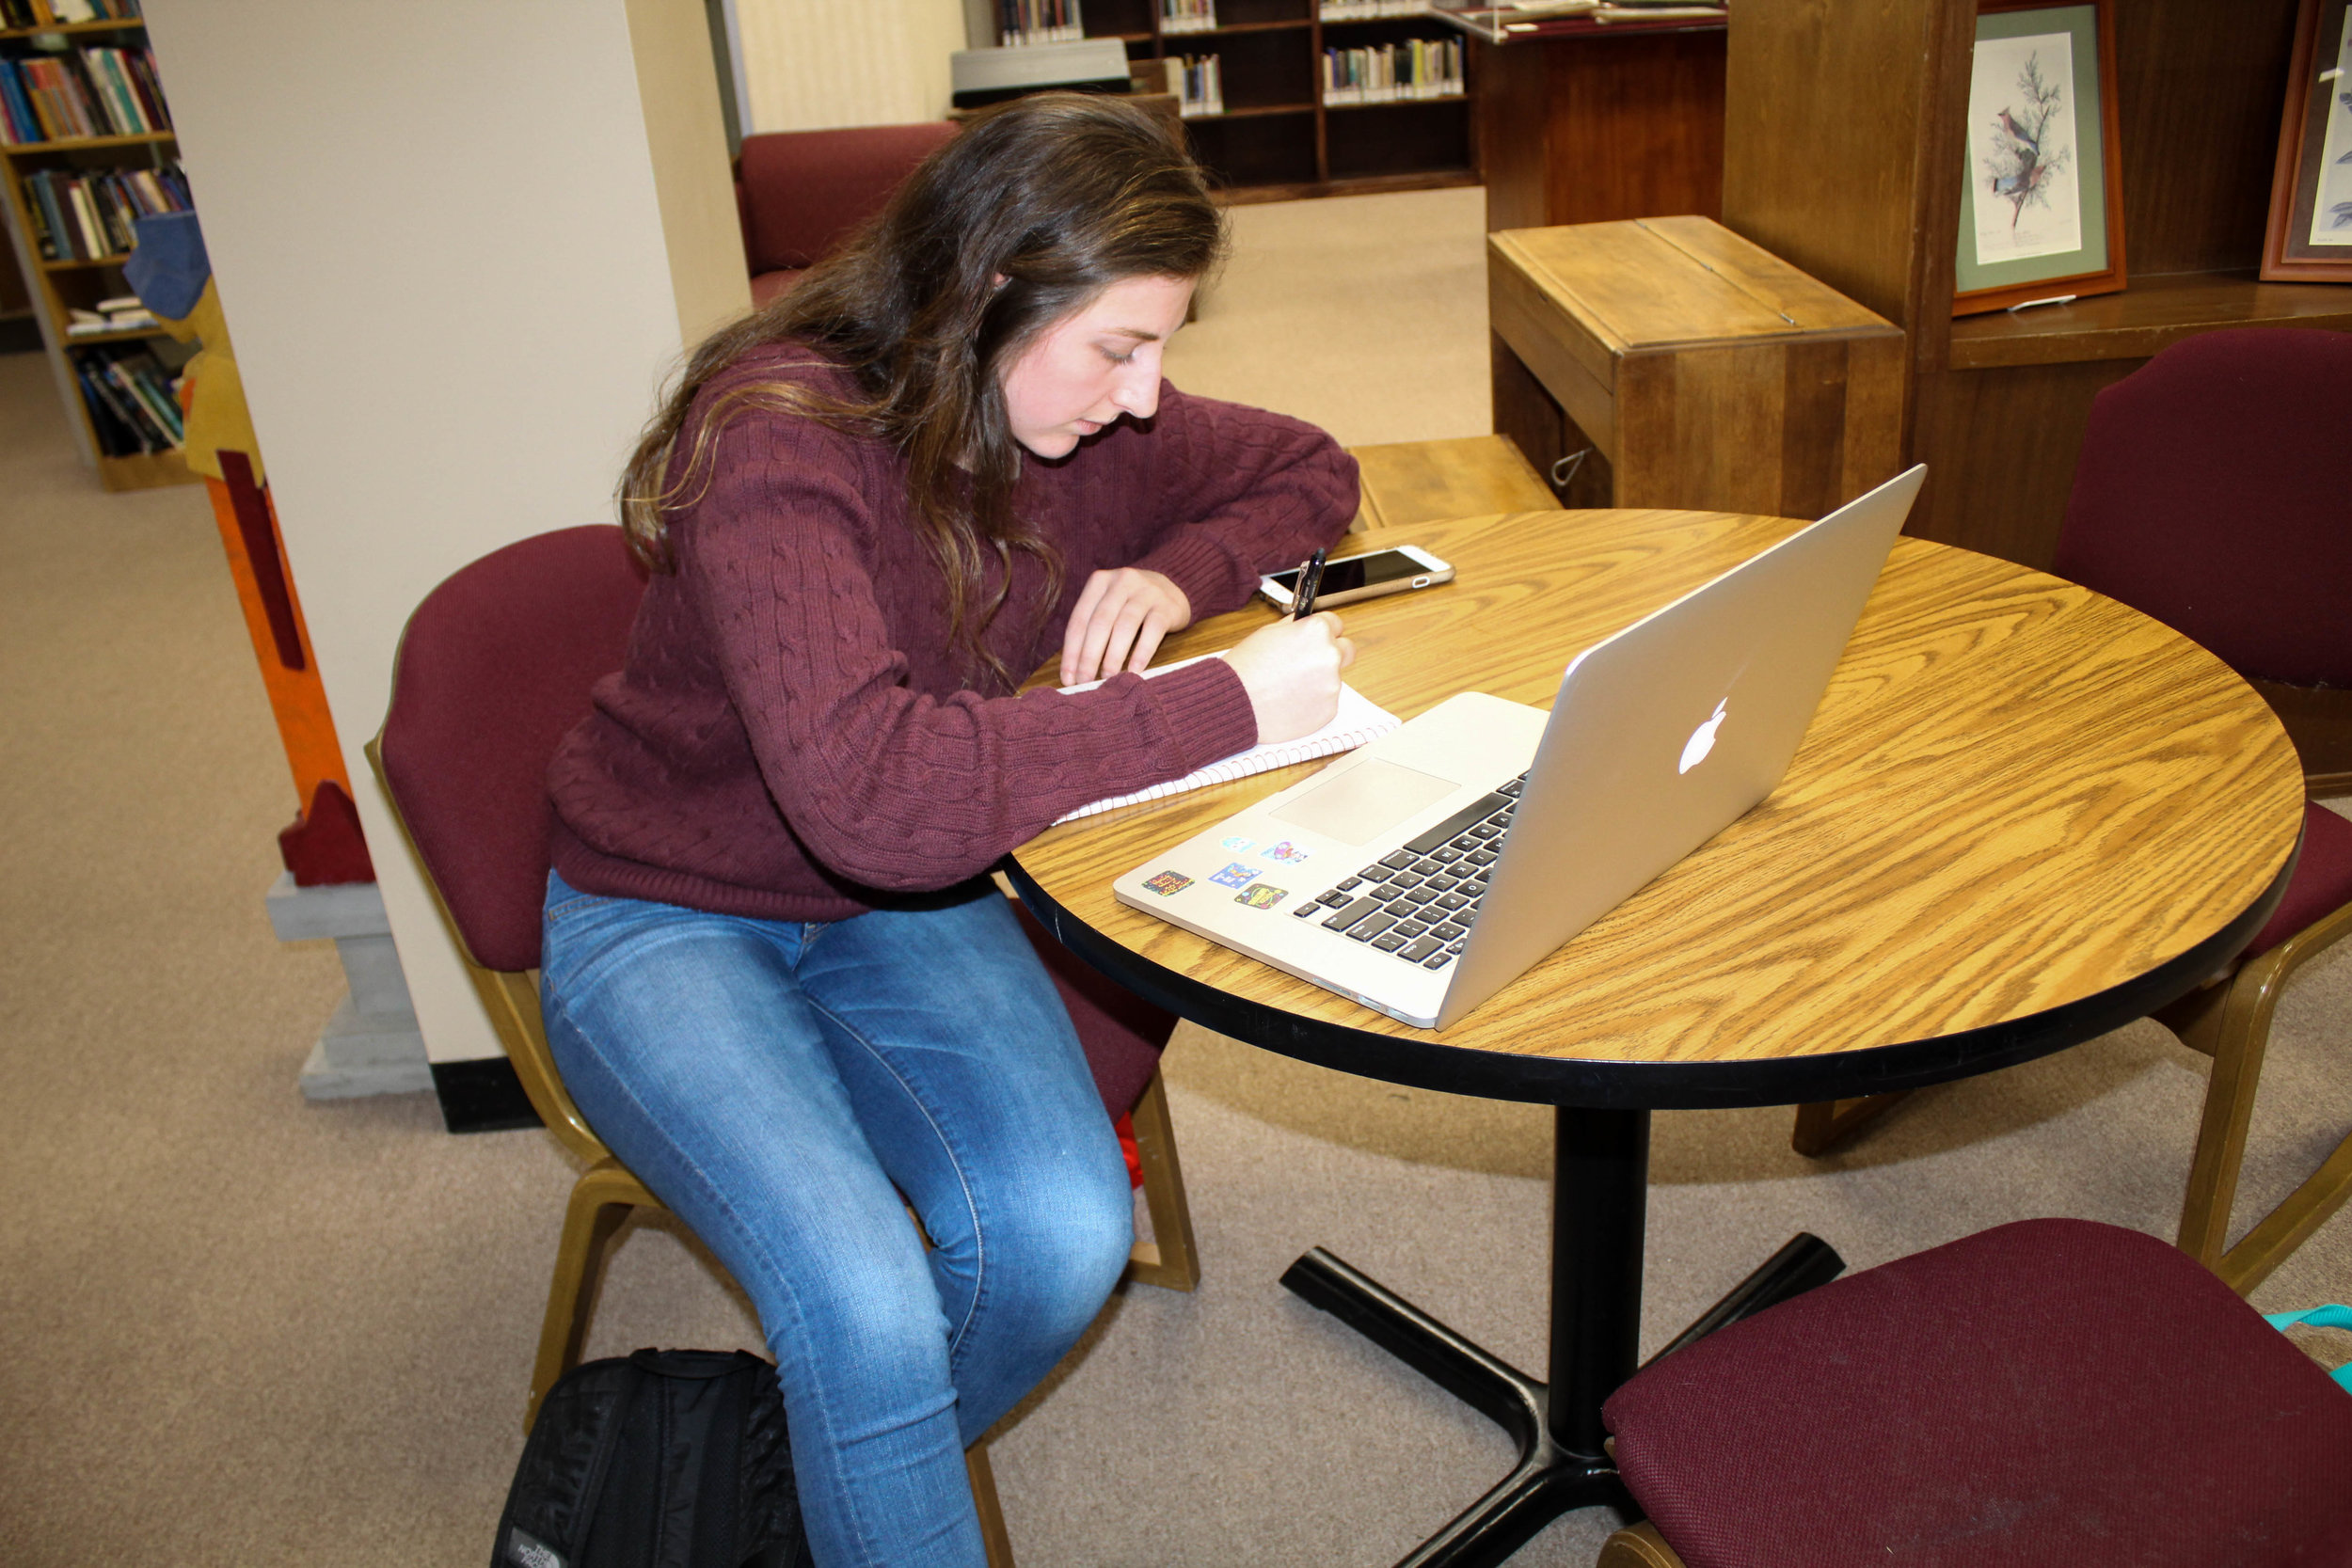 Kyli Schmitt, a junior biology major, uses her laptop as she studies in the library.